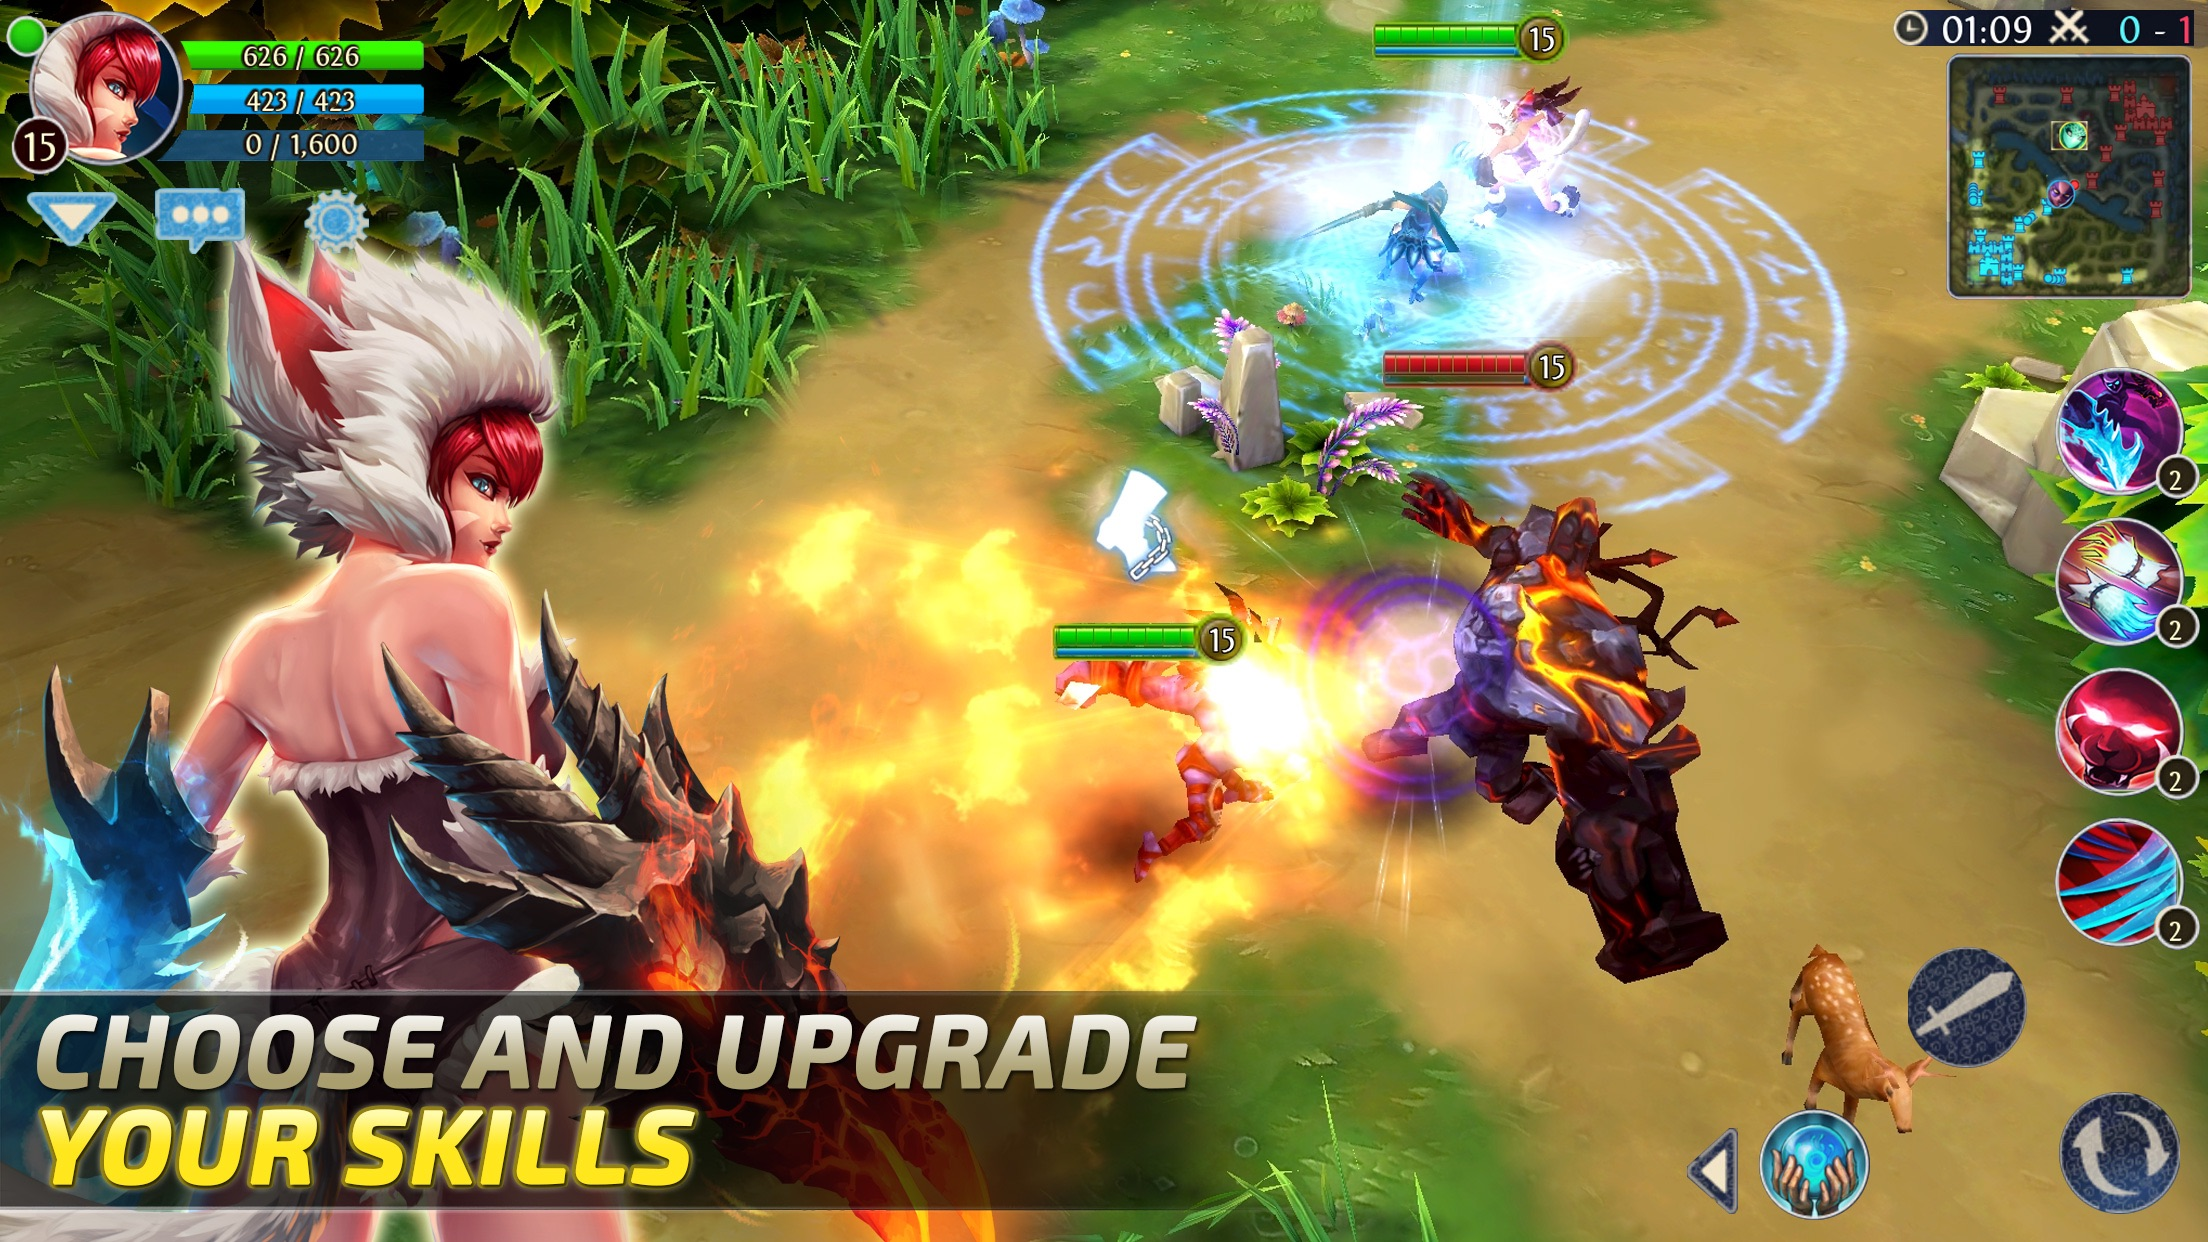 Heroes of Order & Chaos - Multiplayer Online Game Screenshot